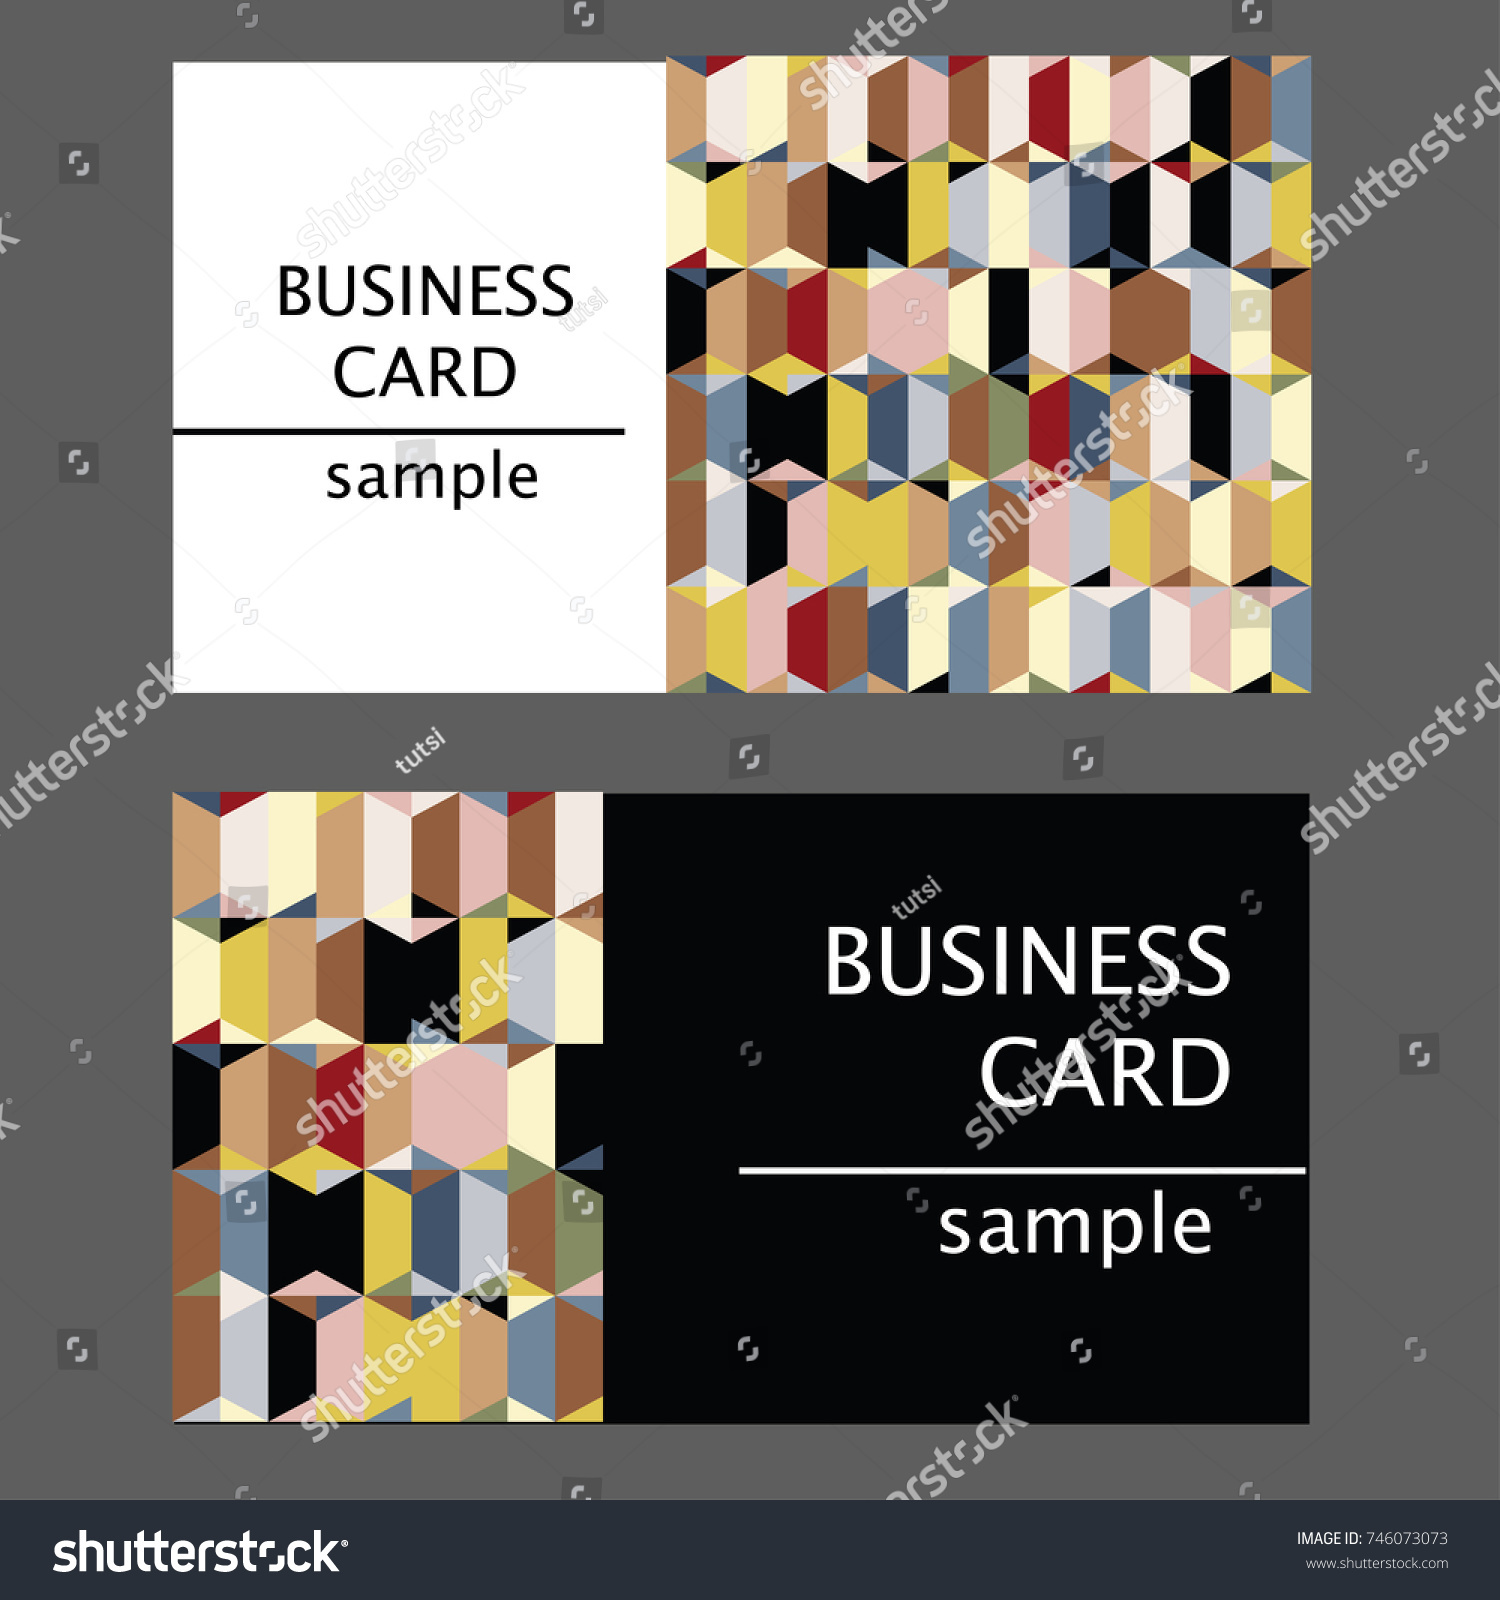 Samples business cards abstract mosaic pattern stock vector samples of business cards with an abstract mosaic pattern magicingreecefo Gallery